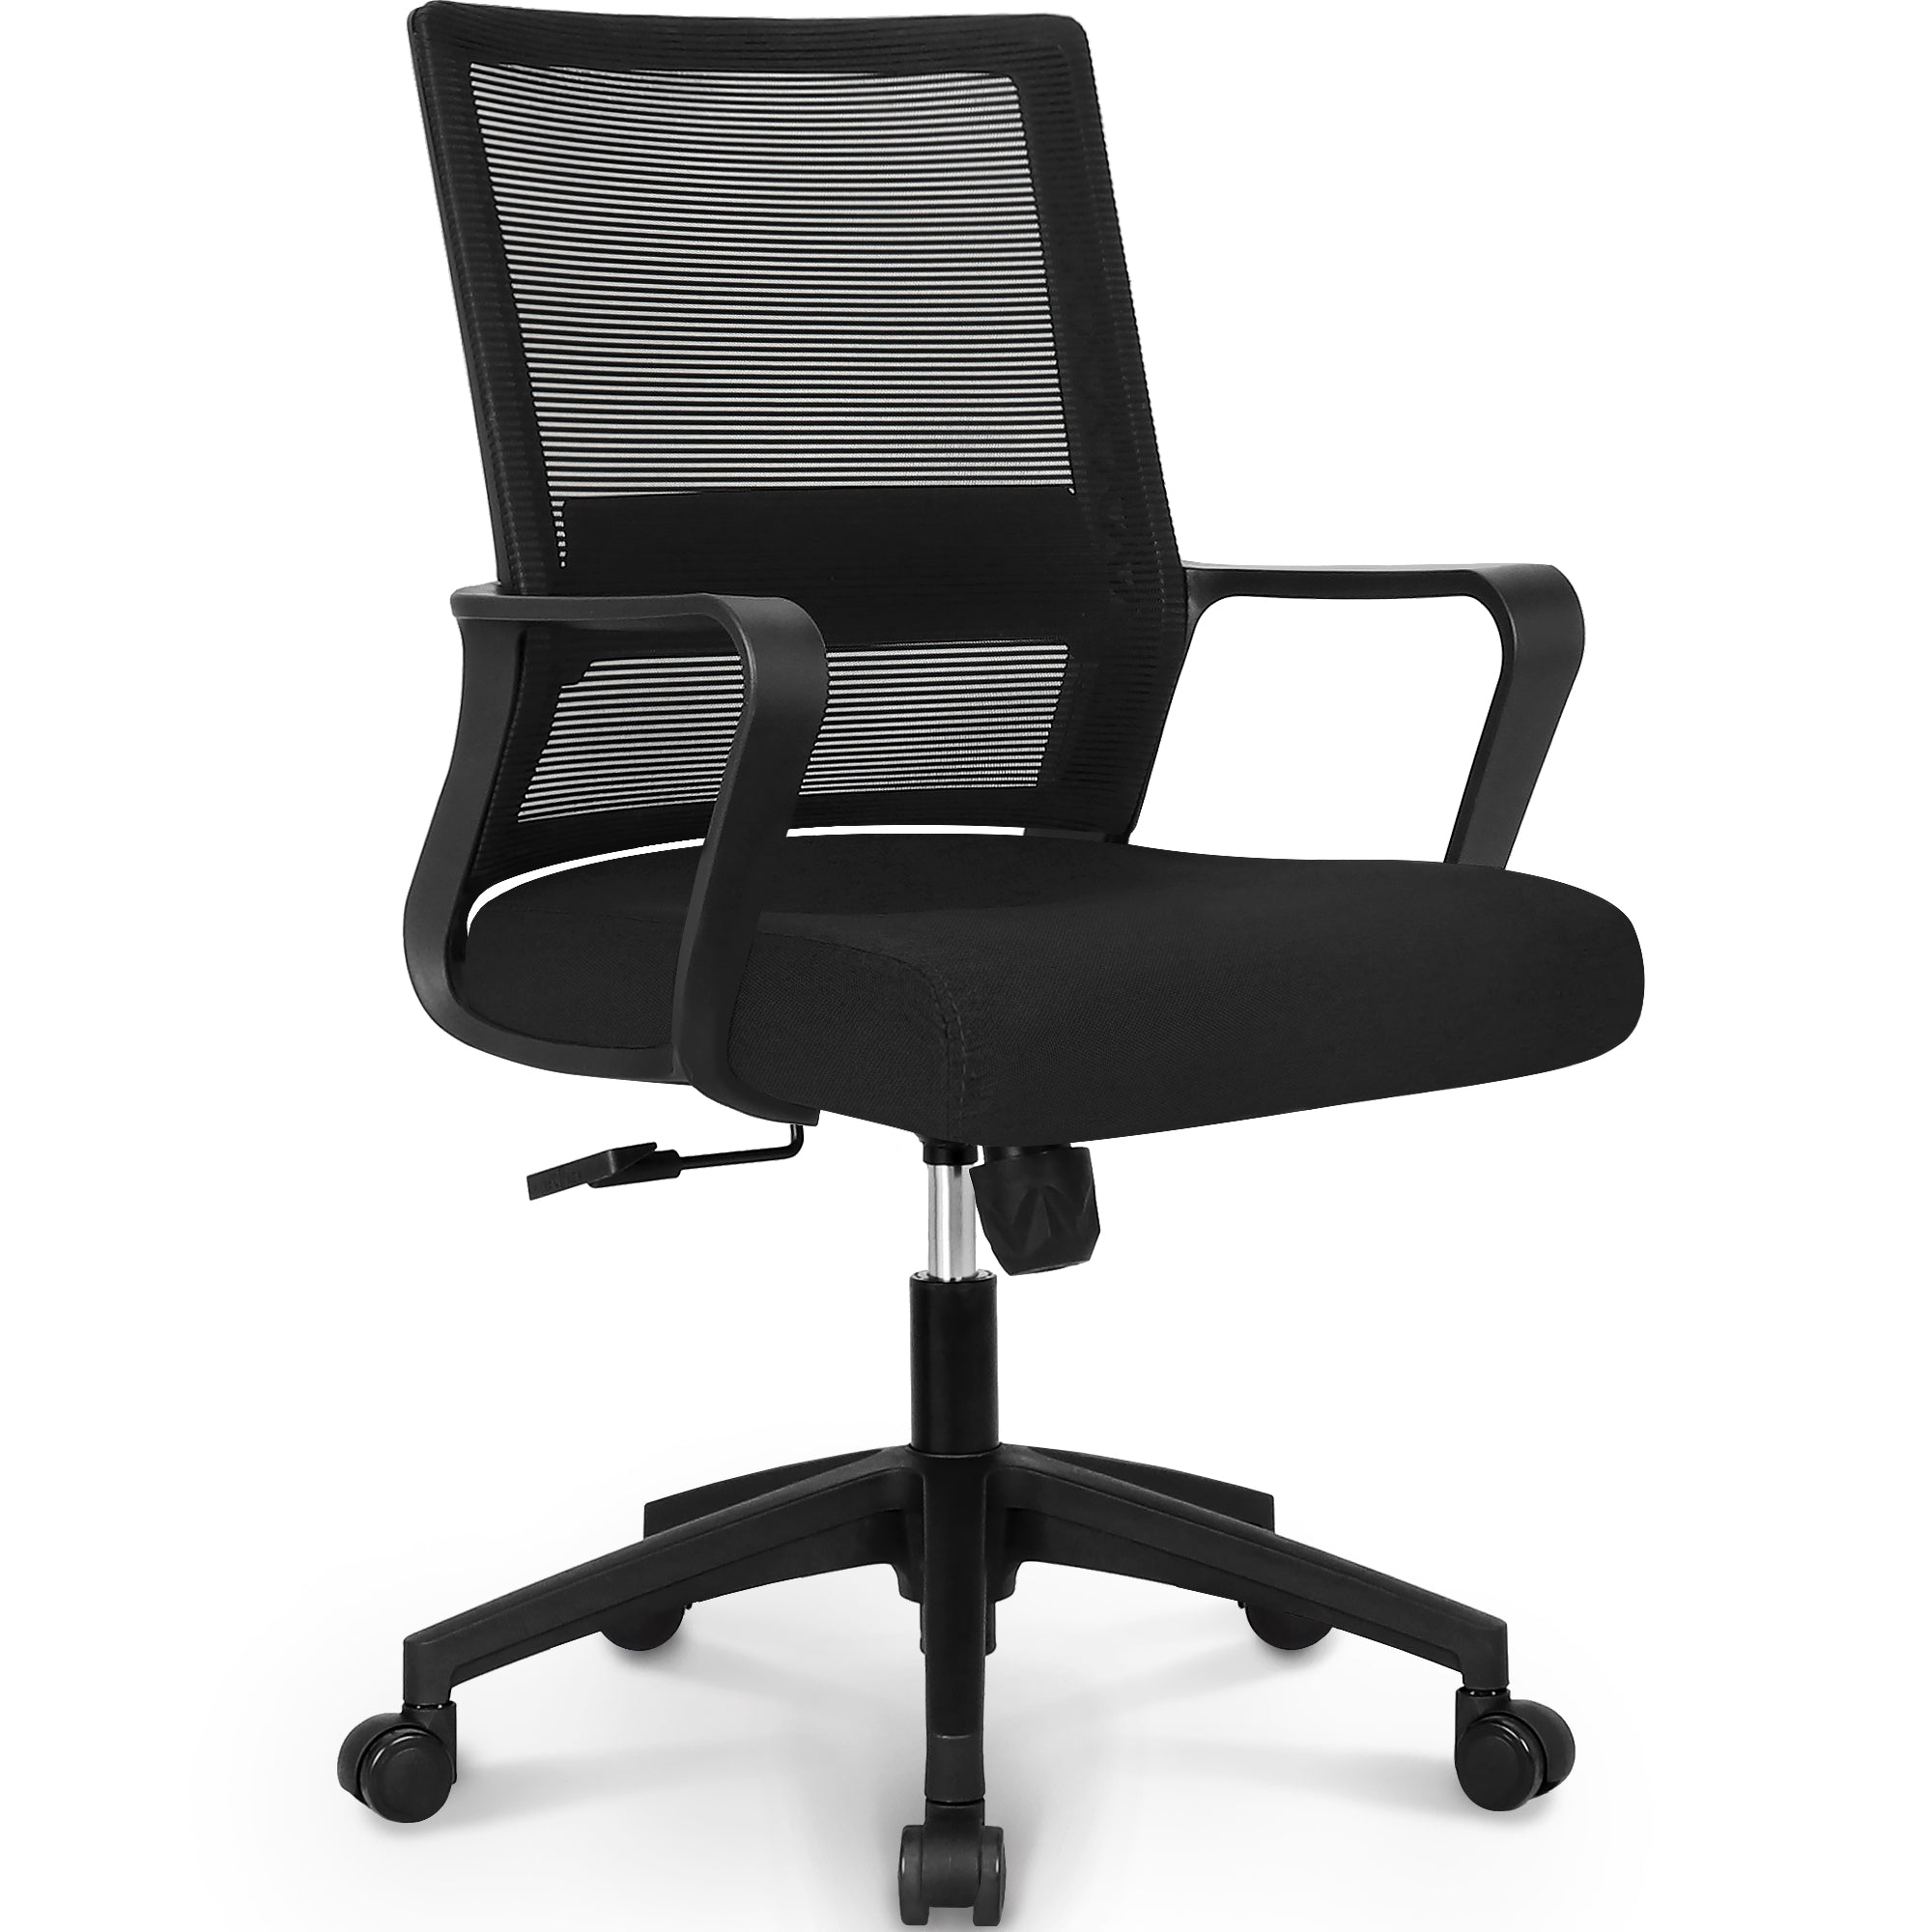 801B - Office Chair